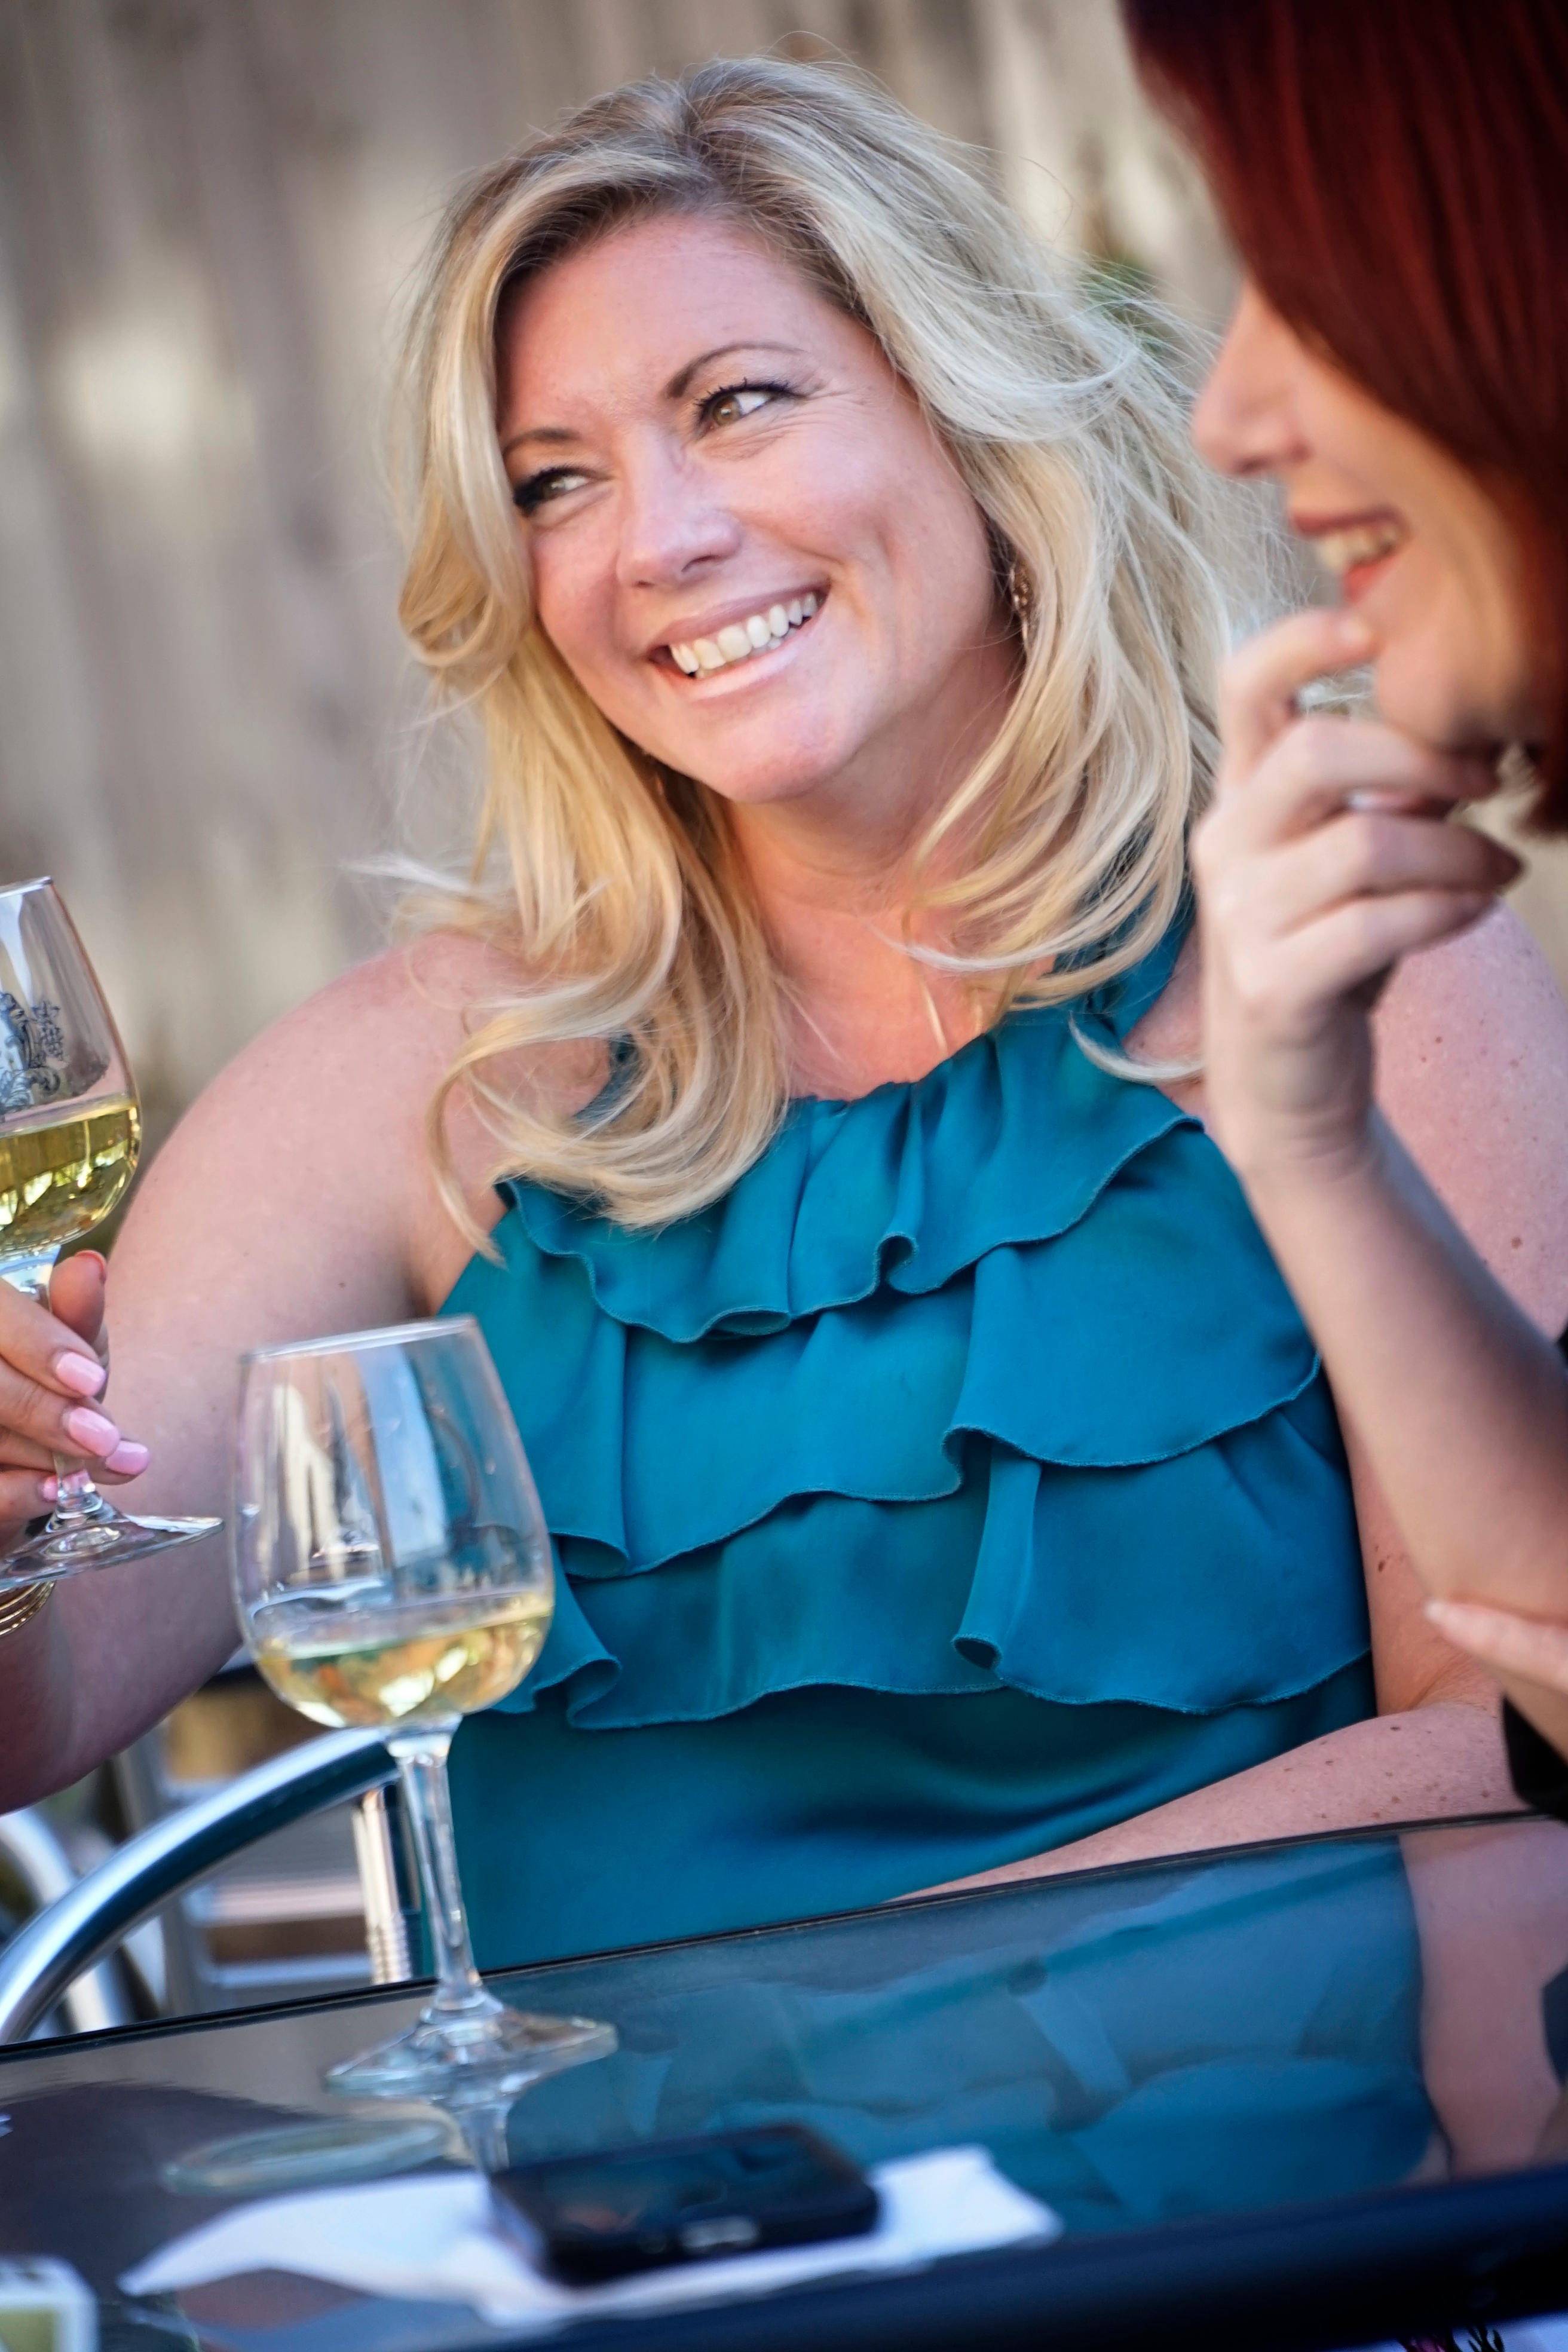 cottleville dating site Are you looking for cottleville older women search through the newest members below and you may just find your ideal match start a conversation and setup a go out tonight.